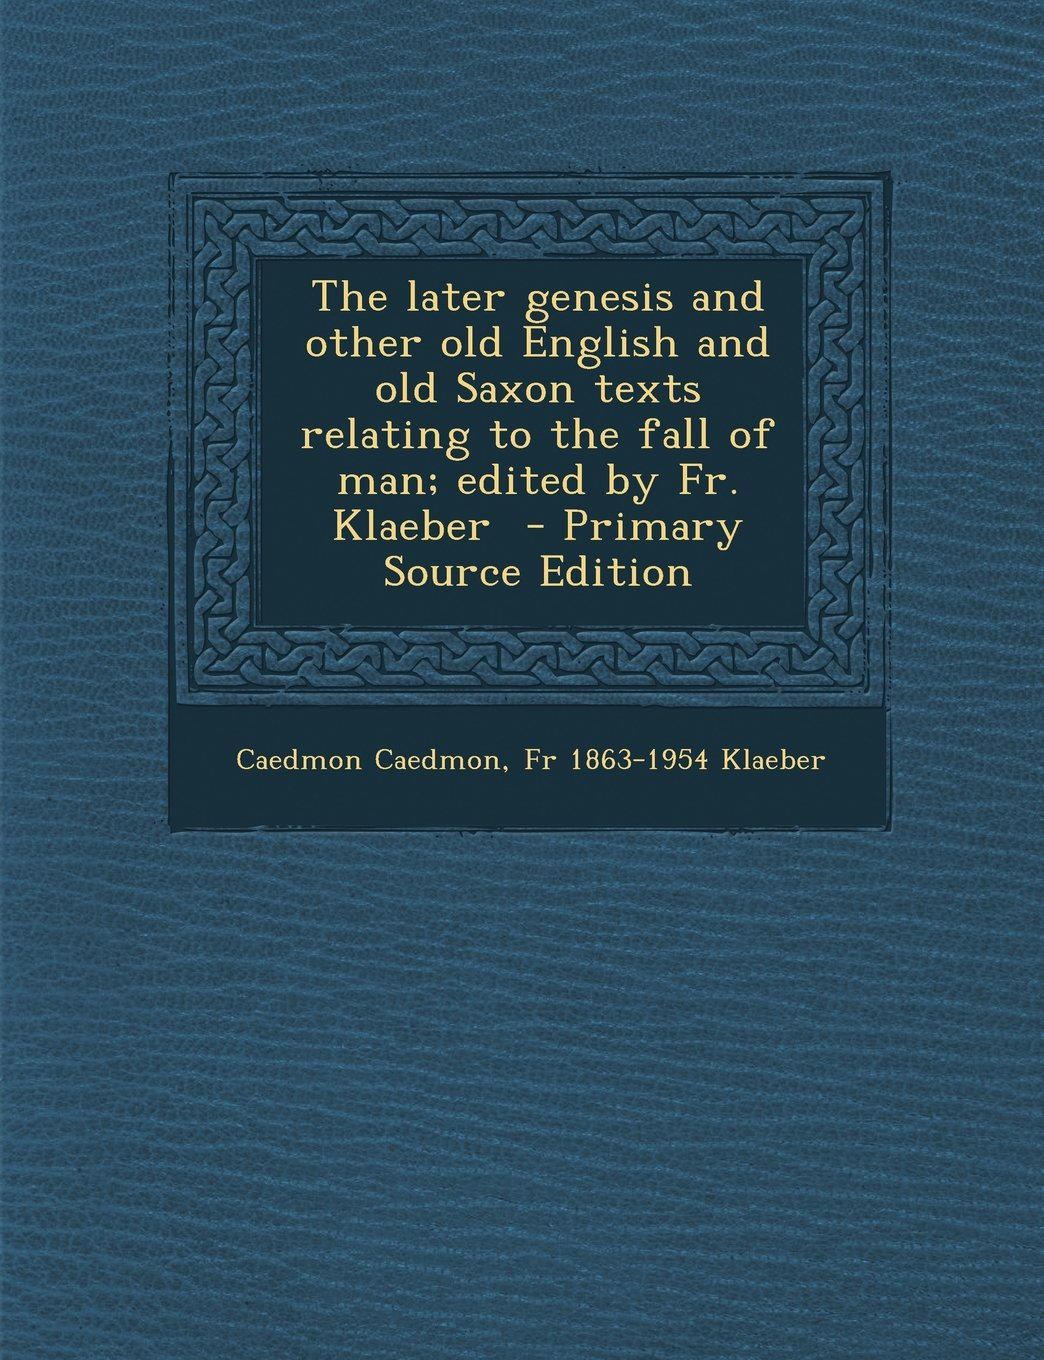 Read Online The later genesis and other old English and old Saxon texts relating to the fall of man; edited by Fr. Klaeber  - Primary Source Edition pdf